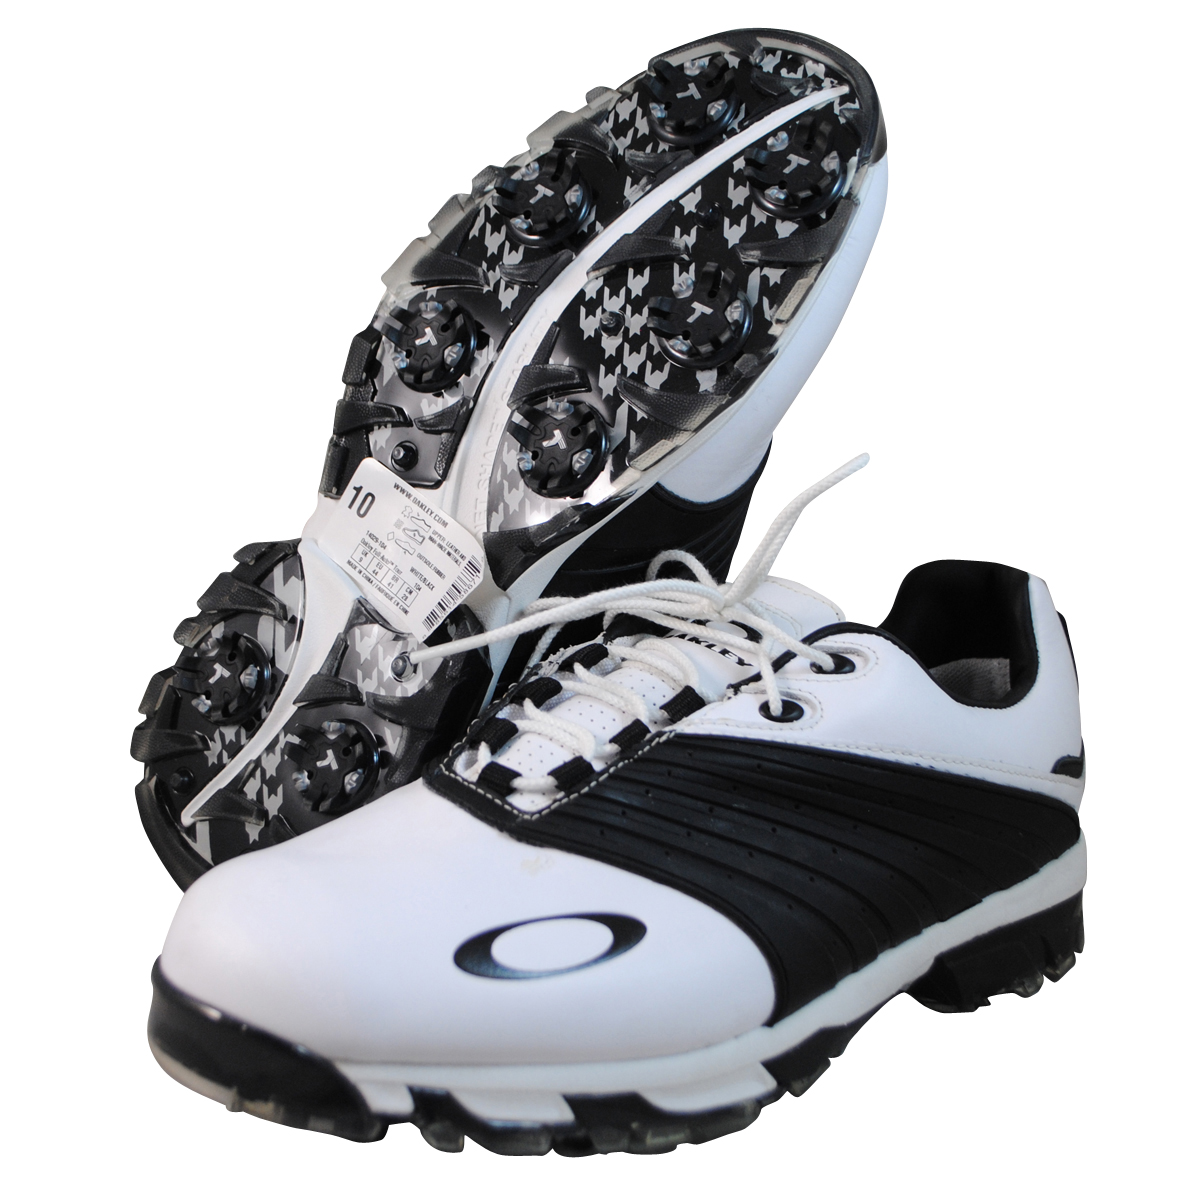 Oakley Shoes For Sale South Africa